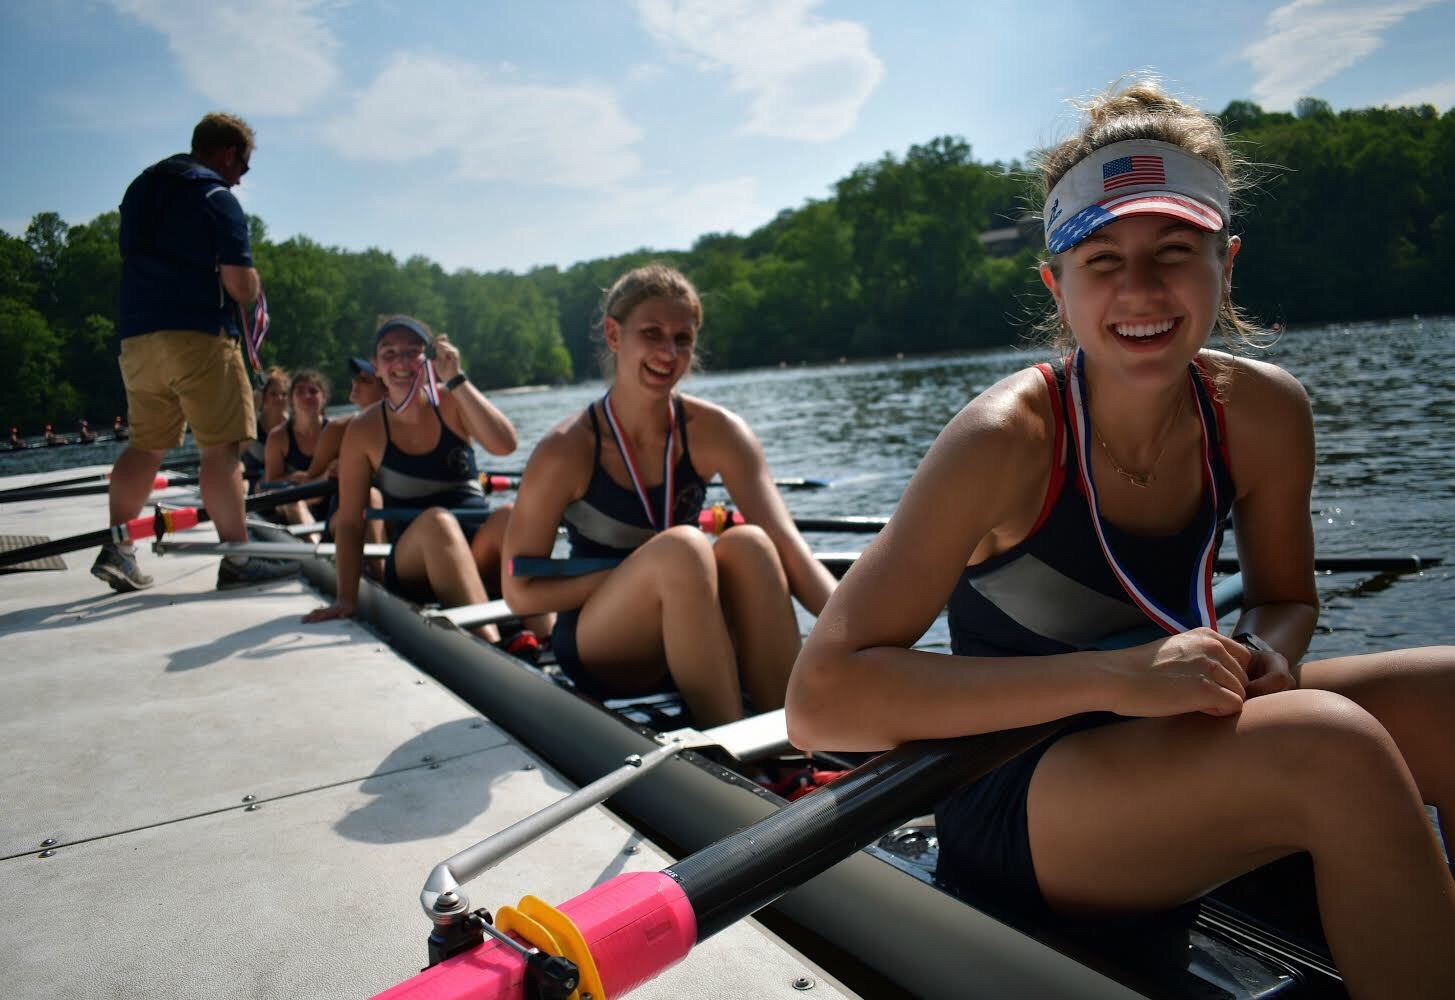 Junior Aidan Wrenn-Walz sits at the finish line dock with the first varsity boat, holding her second place medal at the States championship. The States championship is what rowers at the school spend most of the season preparing for.